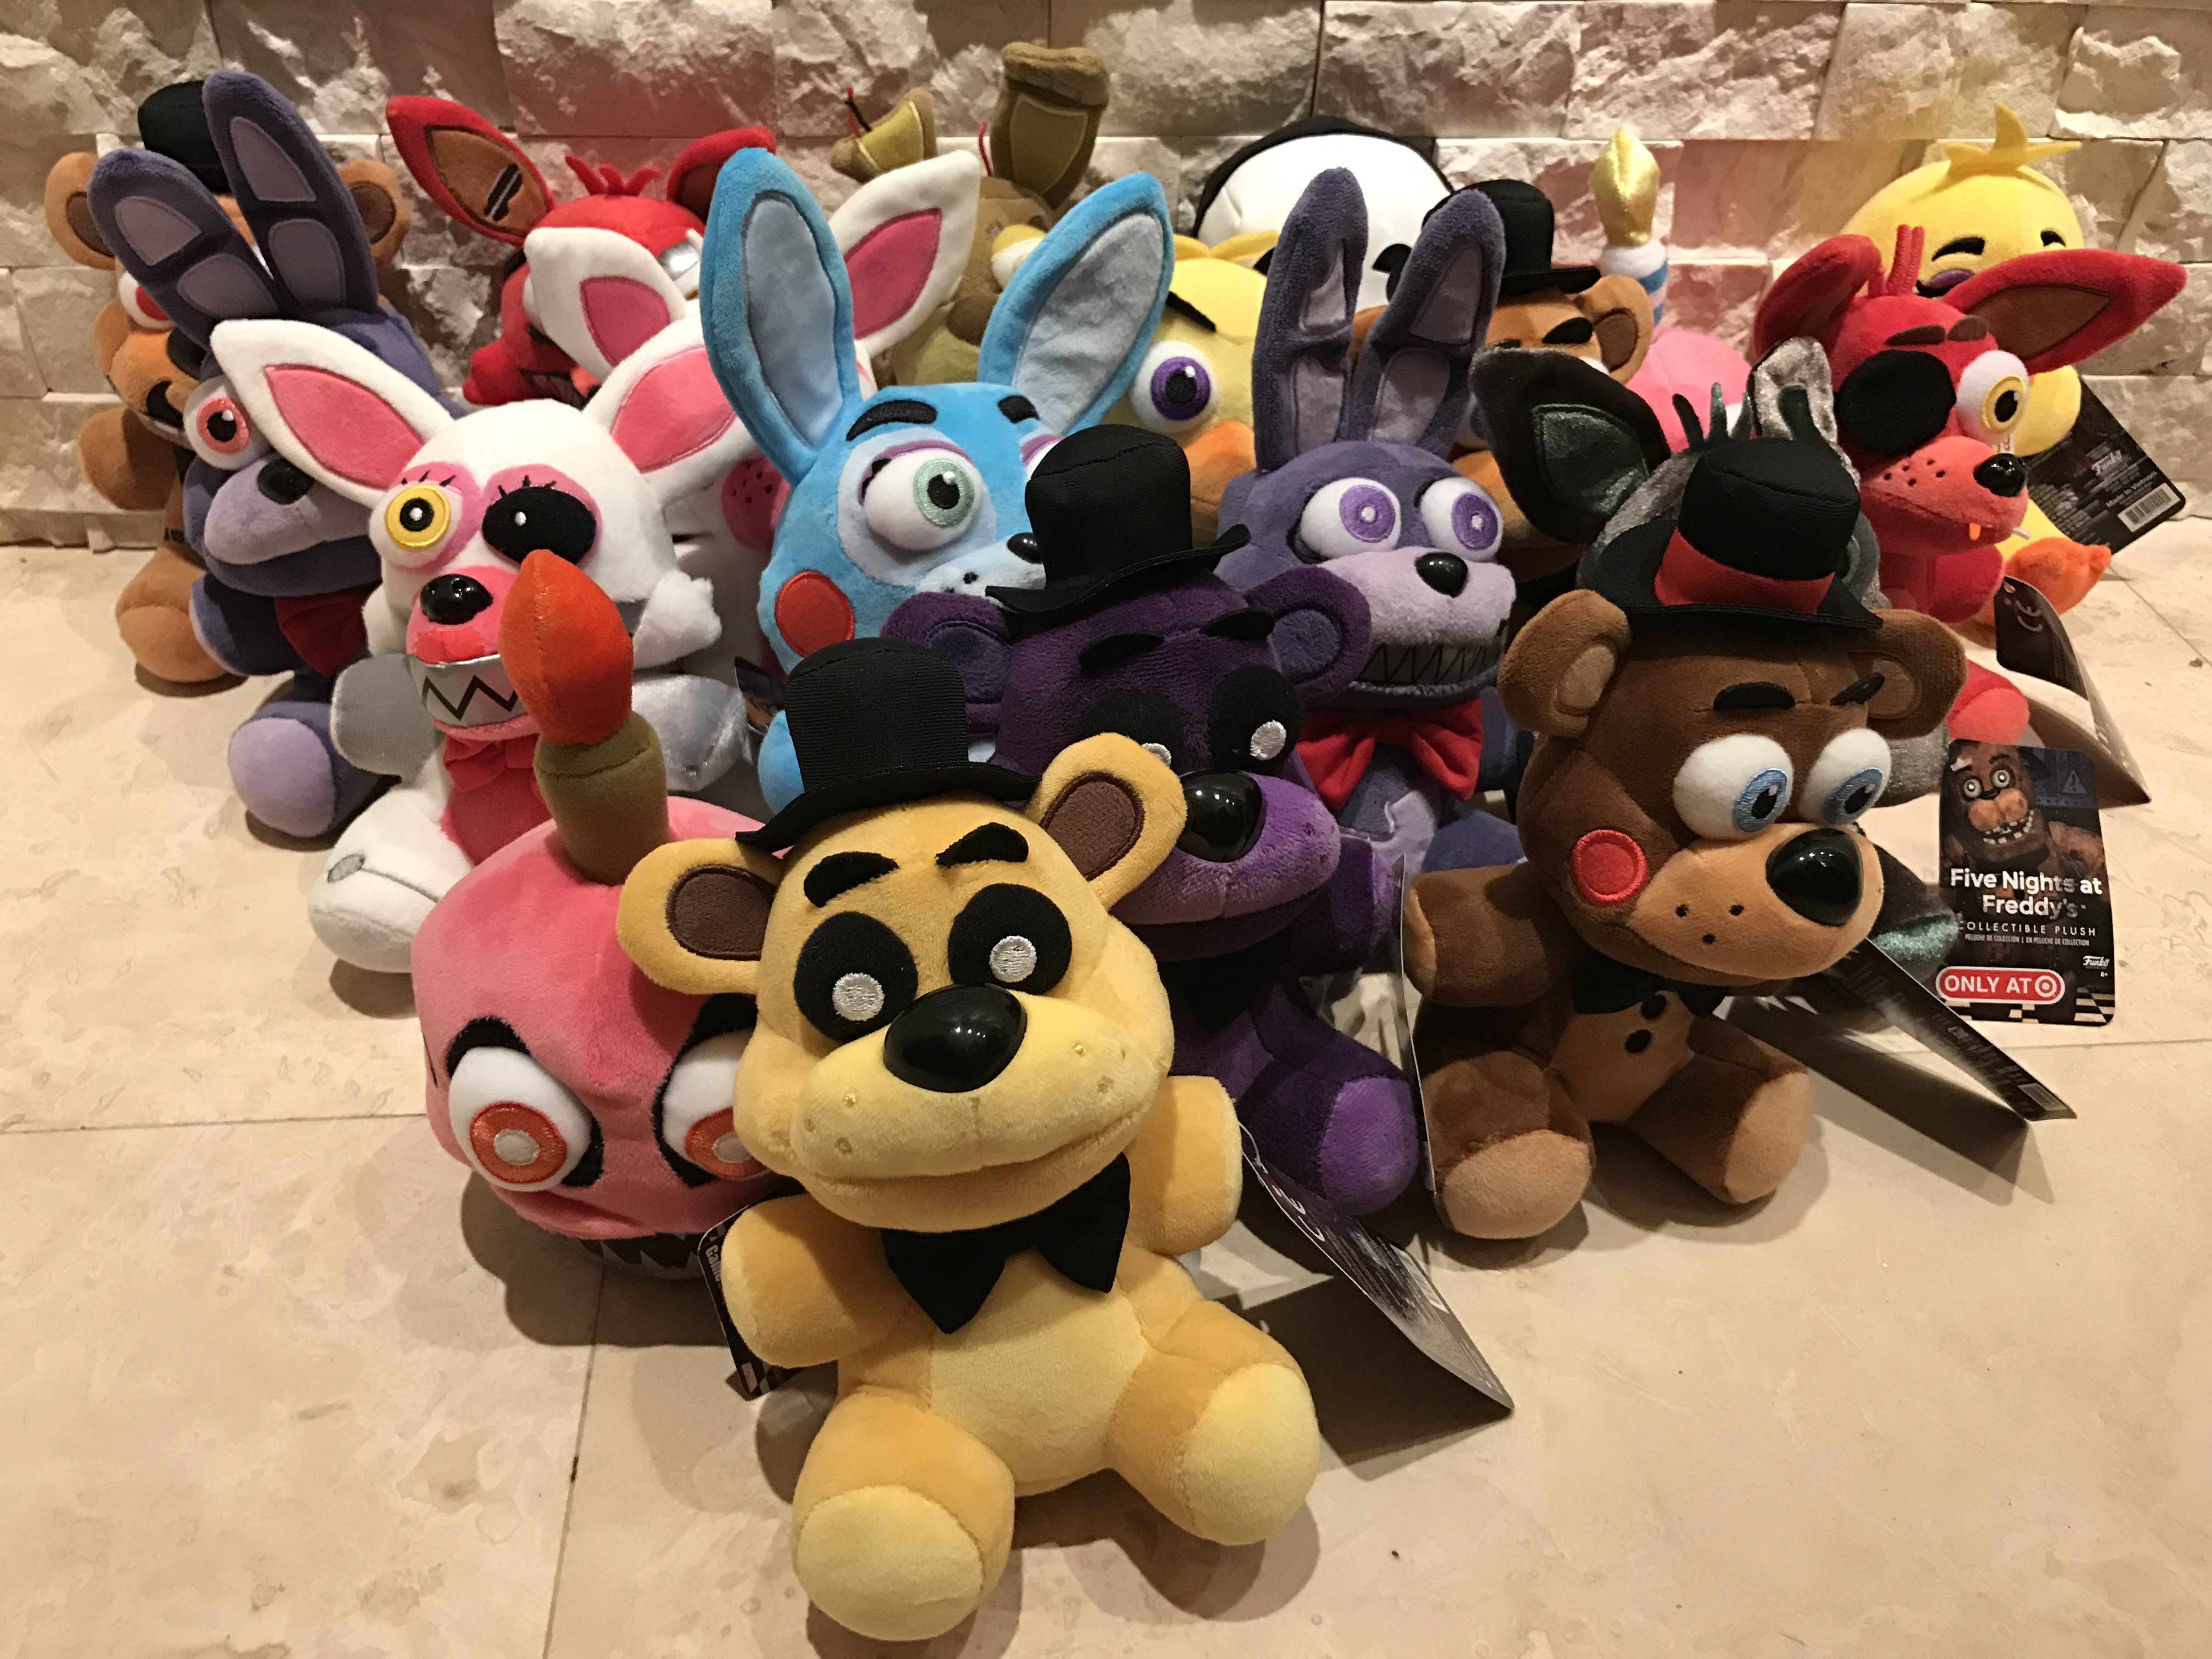 Five Nights At Freddy S Funko Plush Exclusives So Far